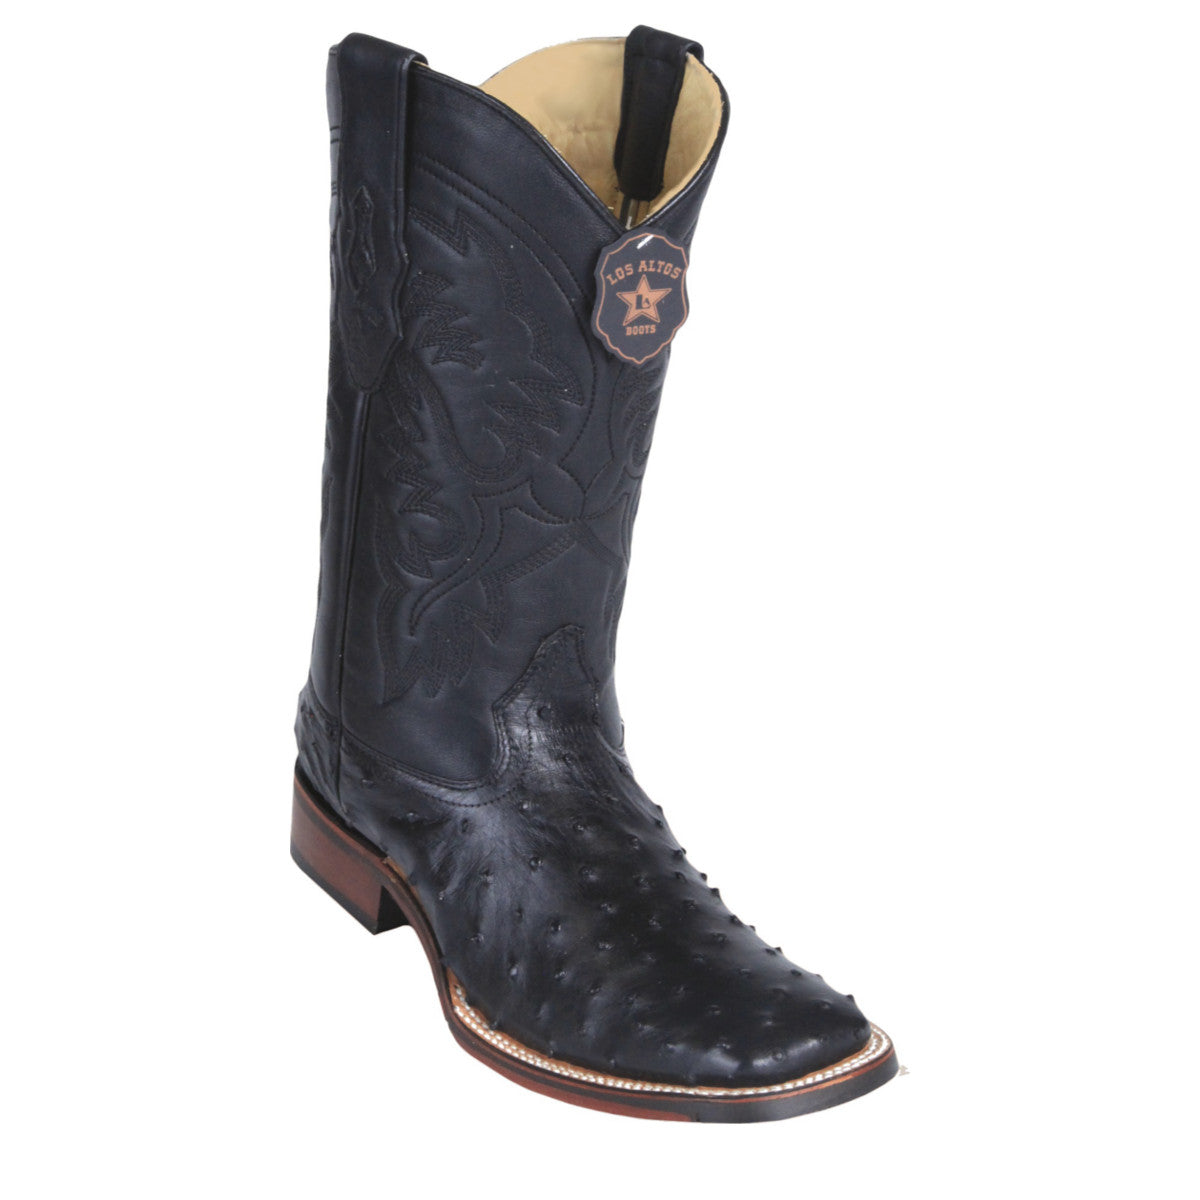 Los Altos Boots Wide Square Toe Ostrich